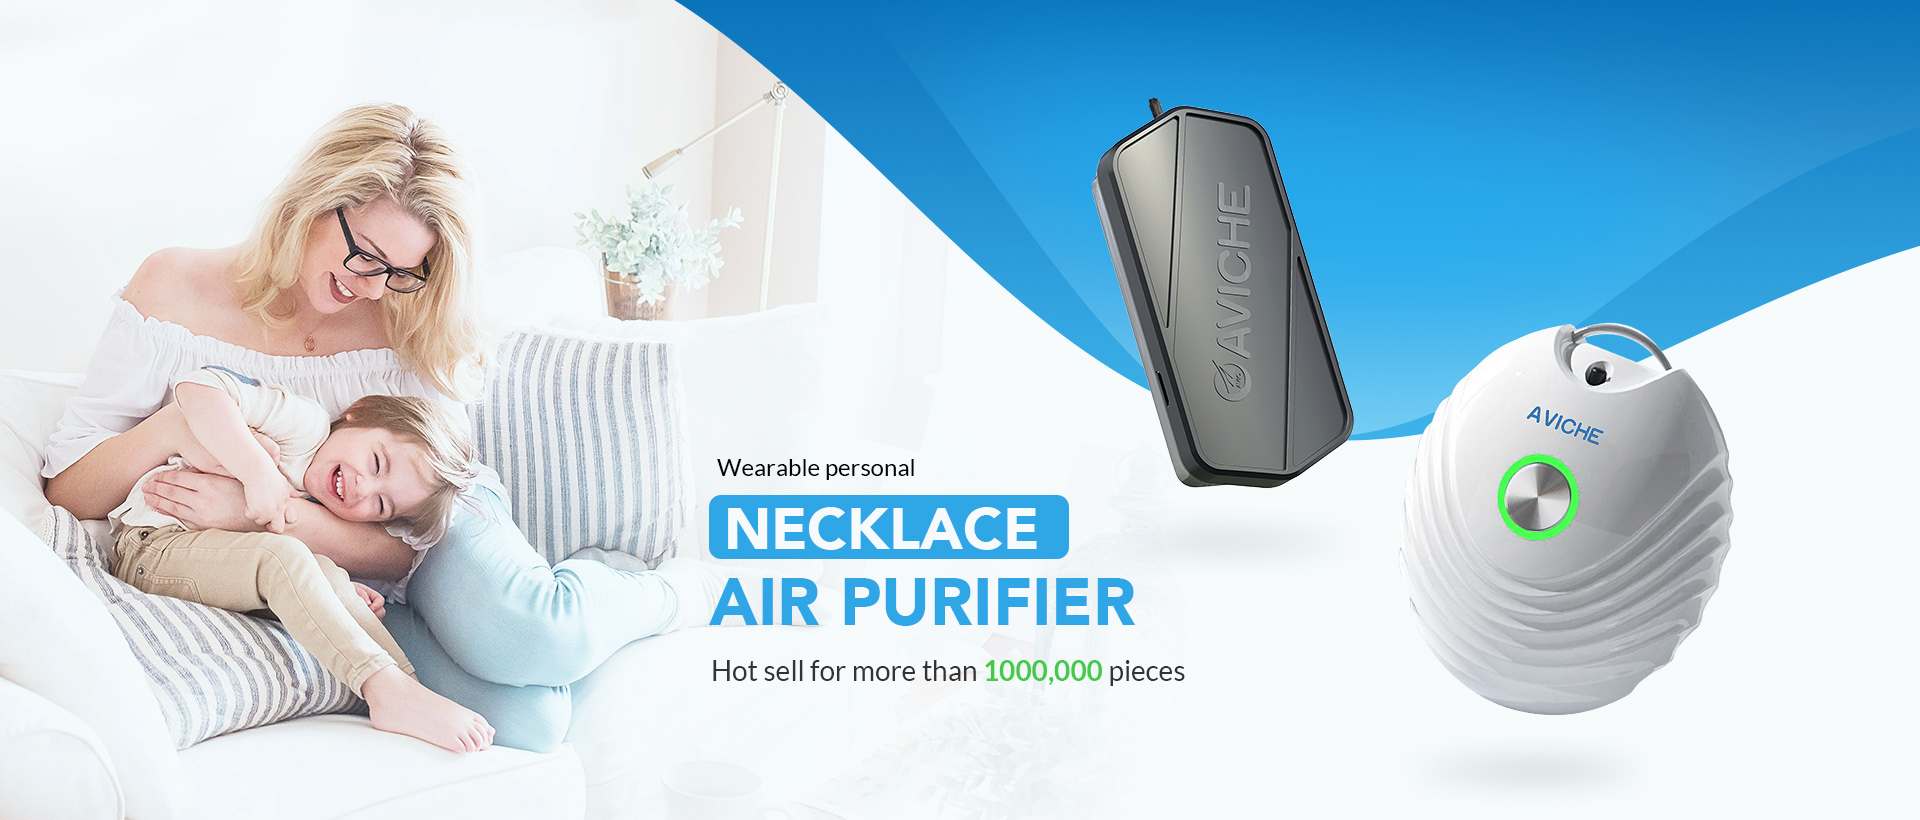 Aviche M1 Version 3.0 Personal  Wearable Air Purifier Necklace